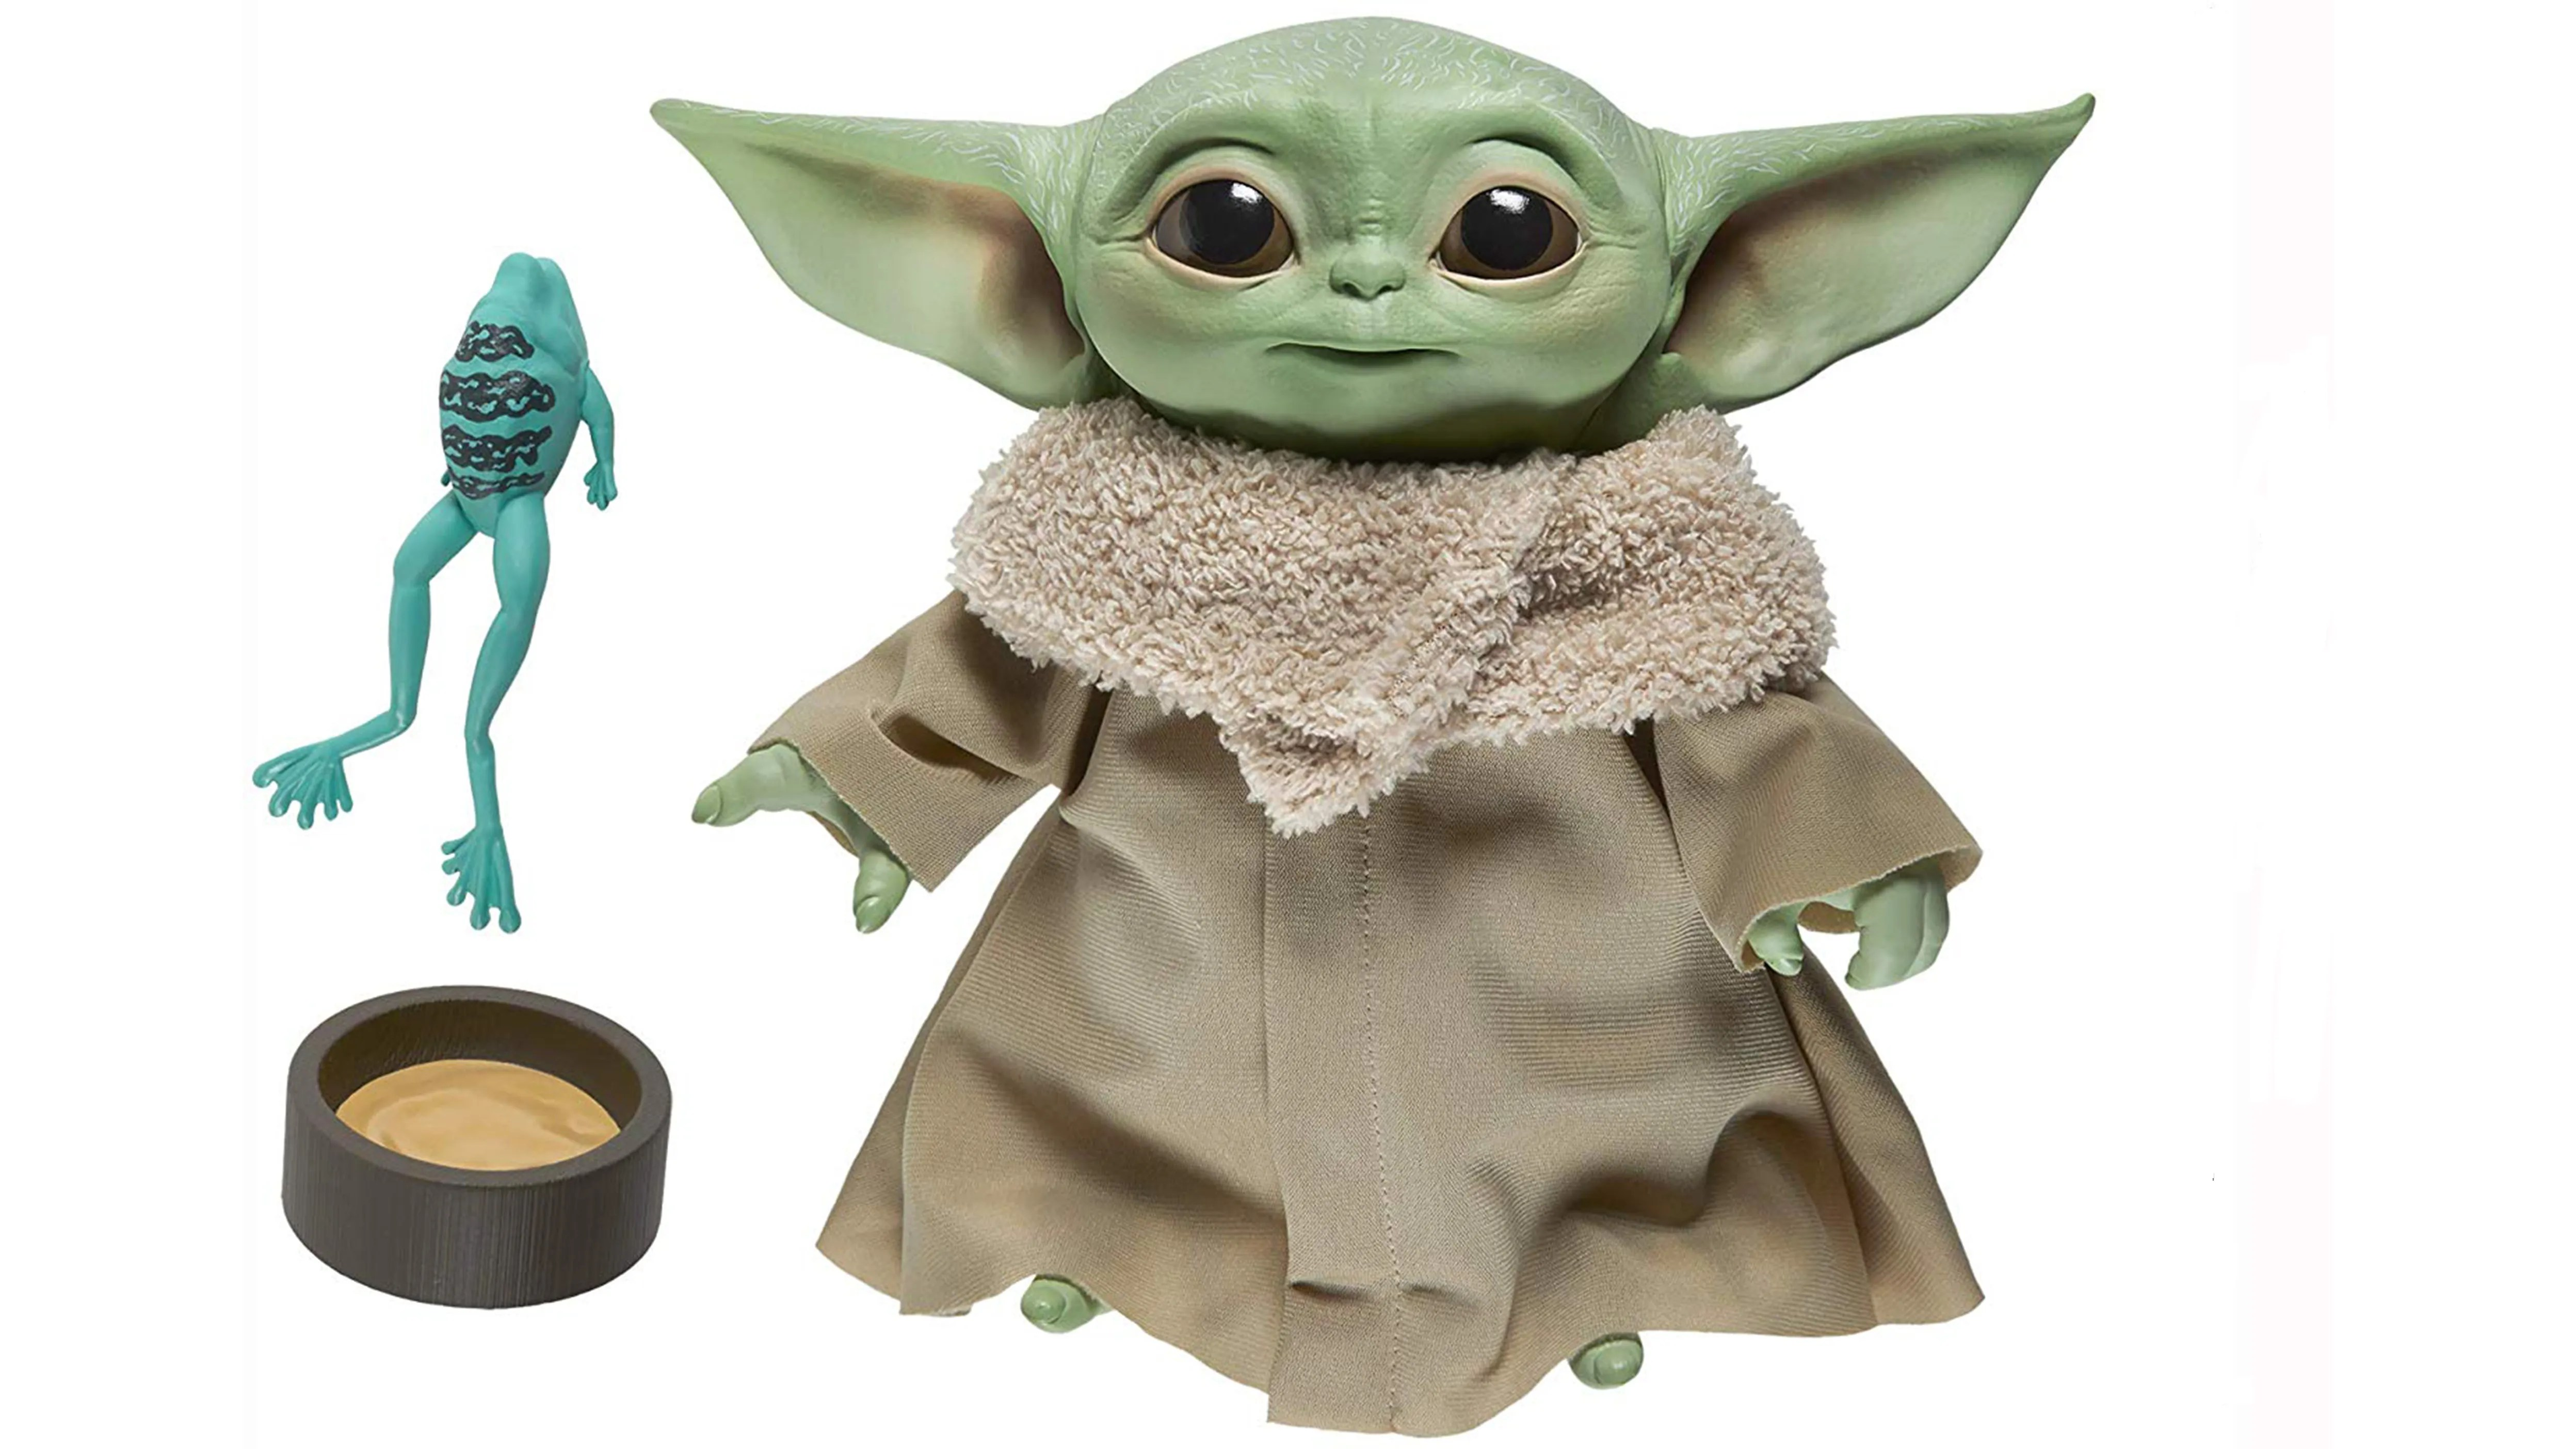 Baby Yoda Merchandise 15 Things You Need If You Re Obsessed With